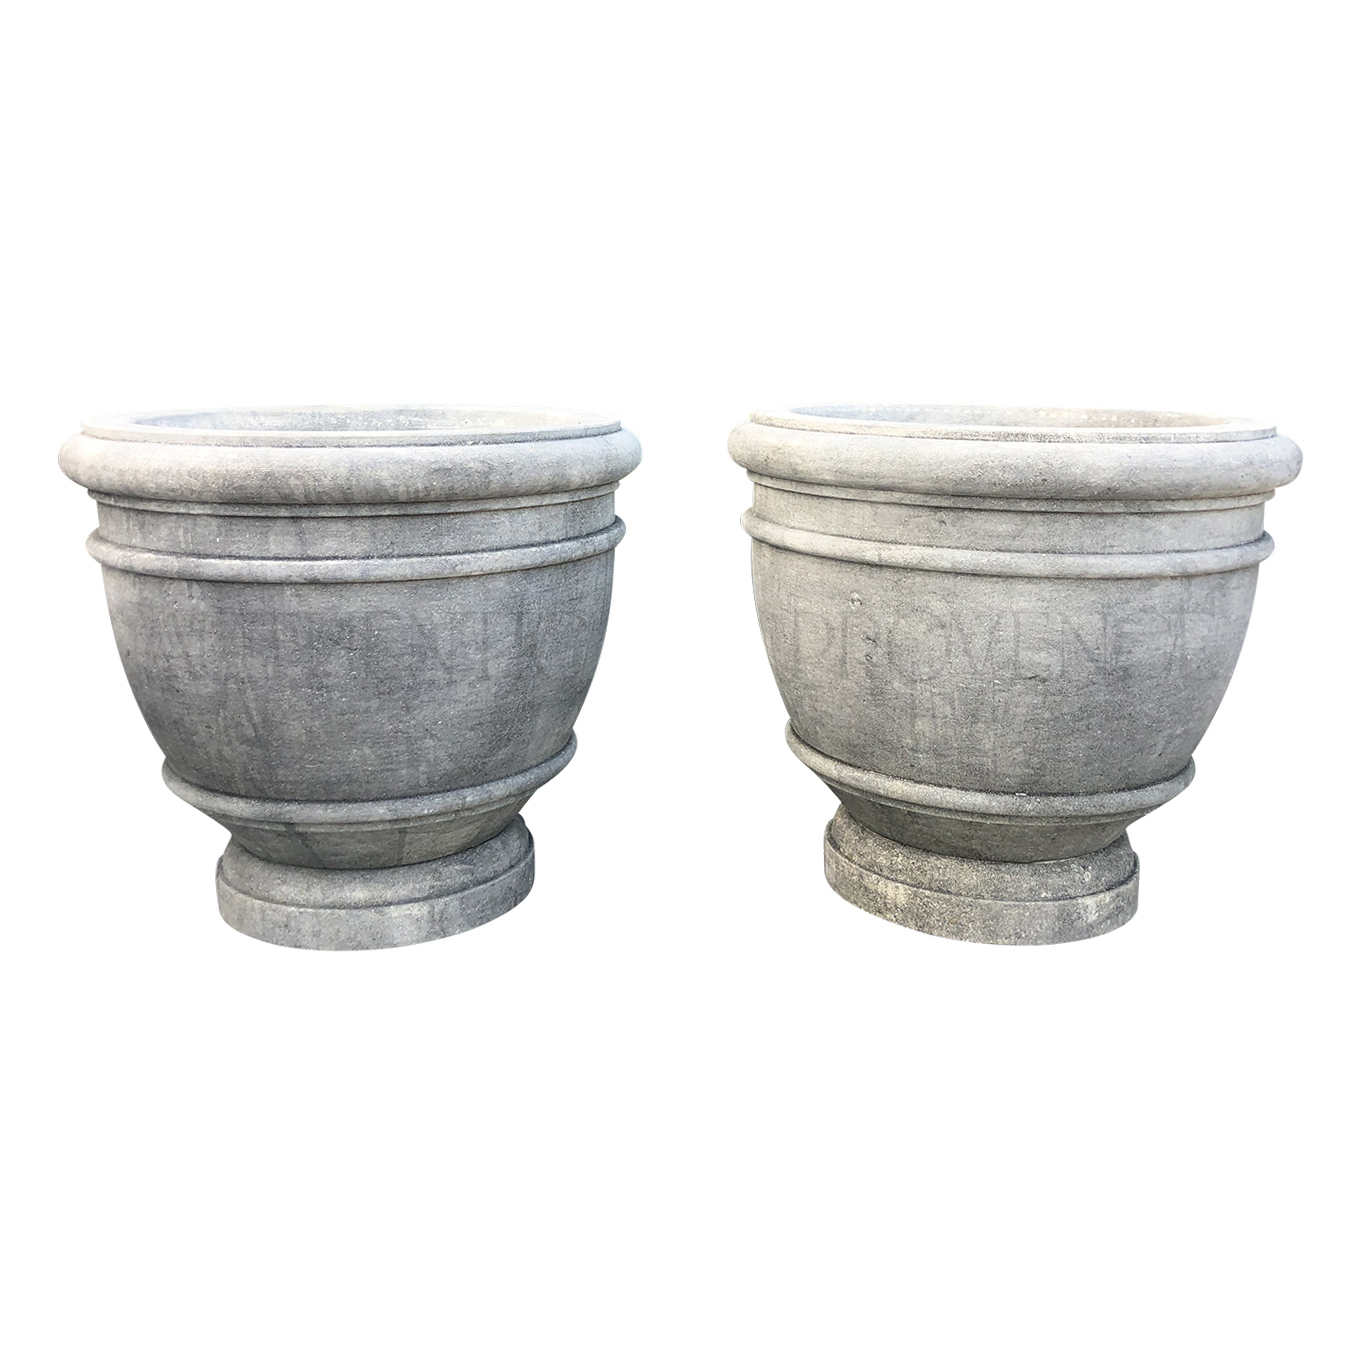 Pair of Conche Urns